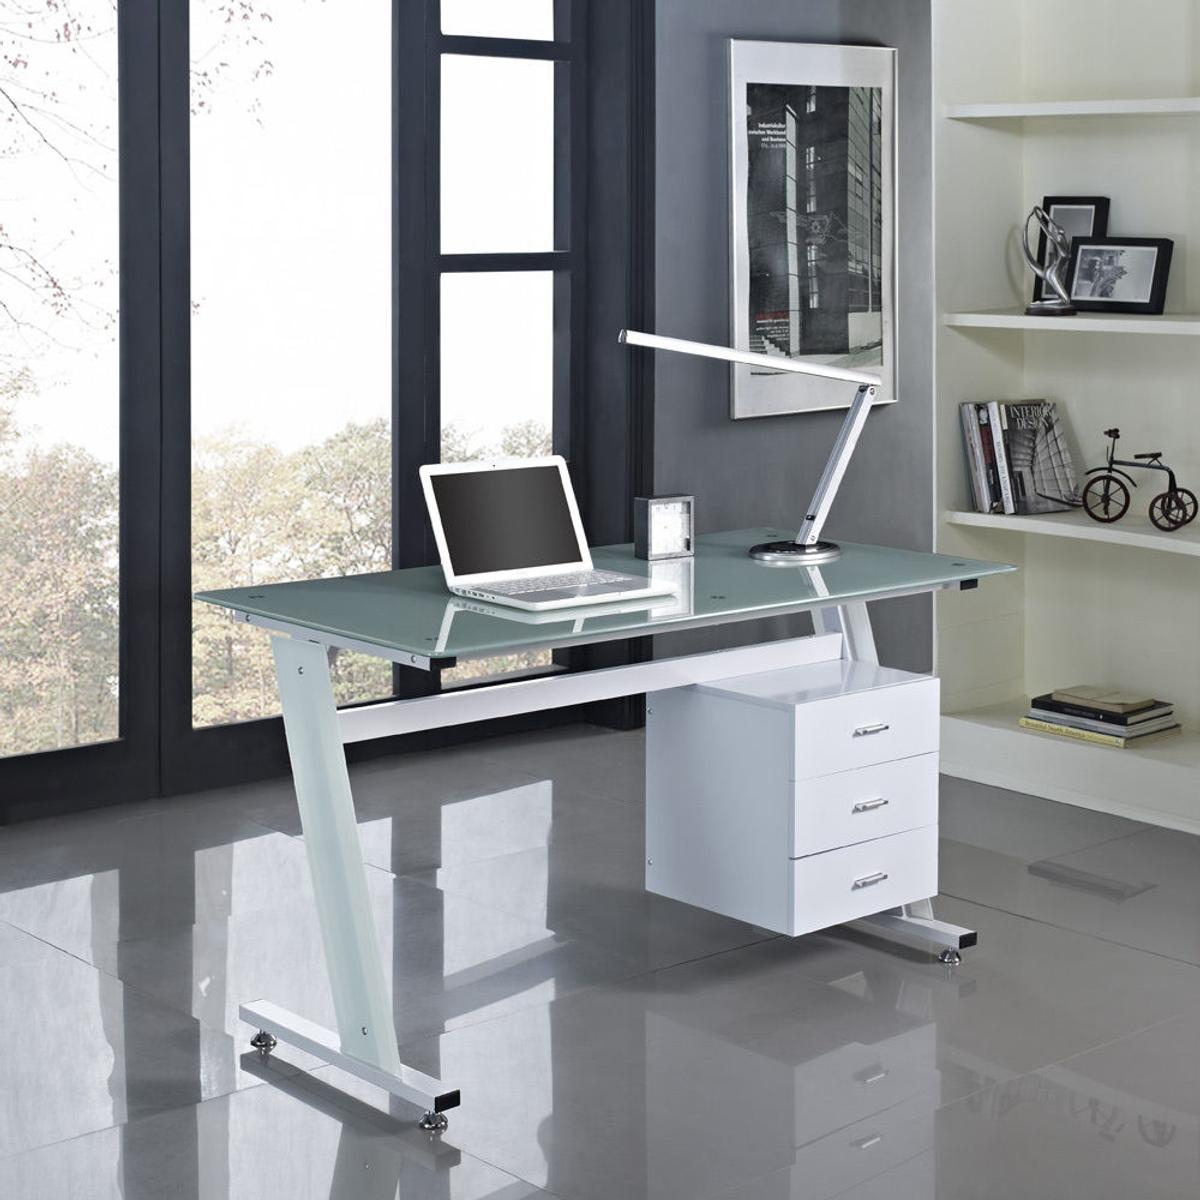 - New Computer Office Desk Glass Top & Drawers In DE11 Derbyshire